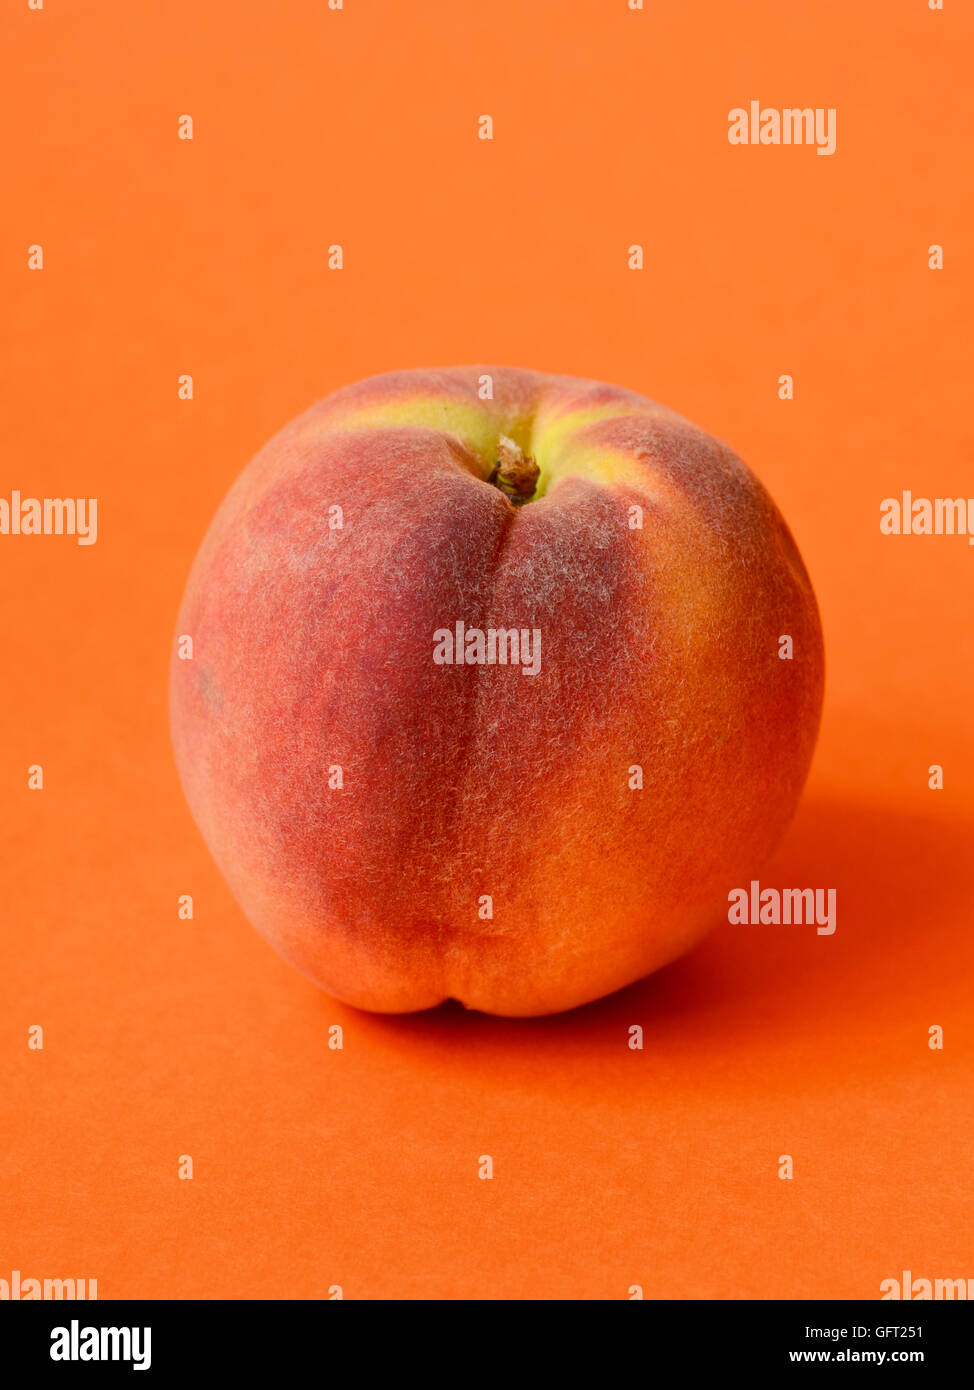 One ripe peach on orange colored background - Stock Image